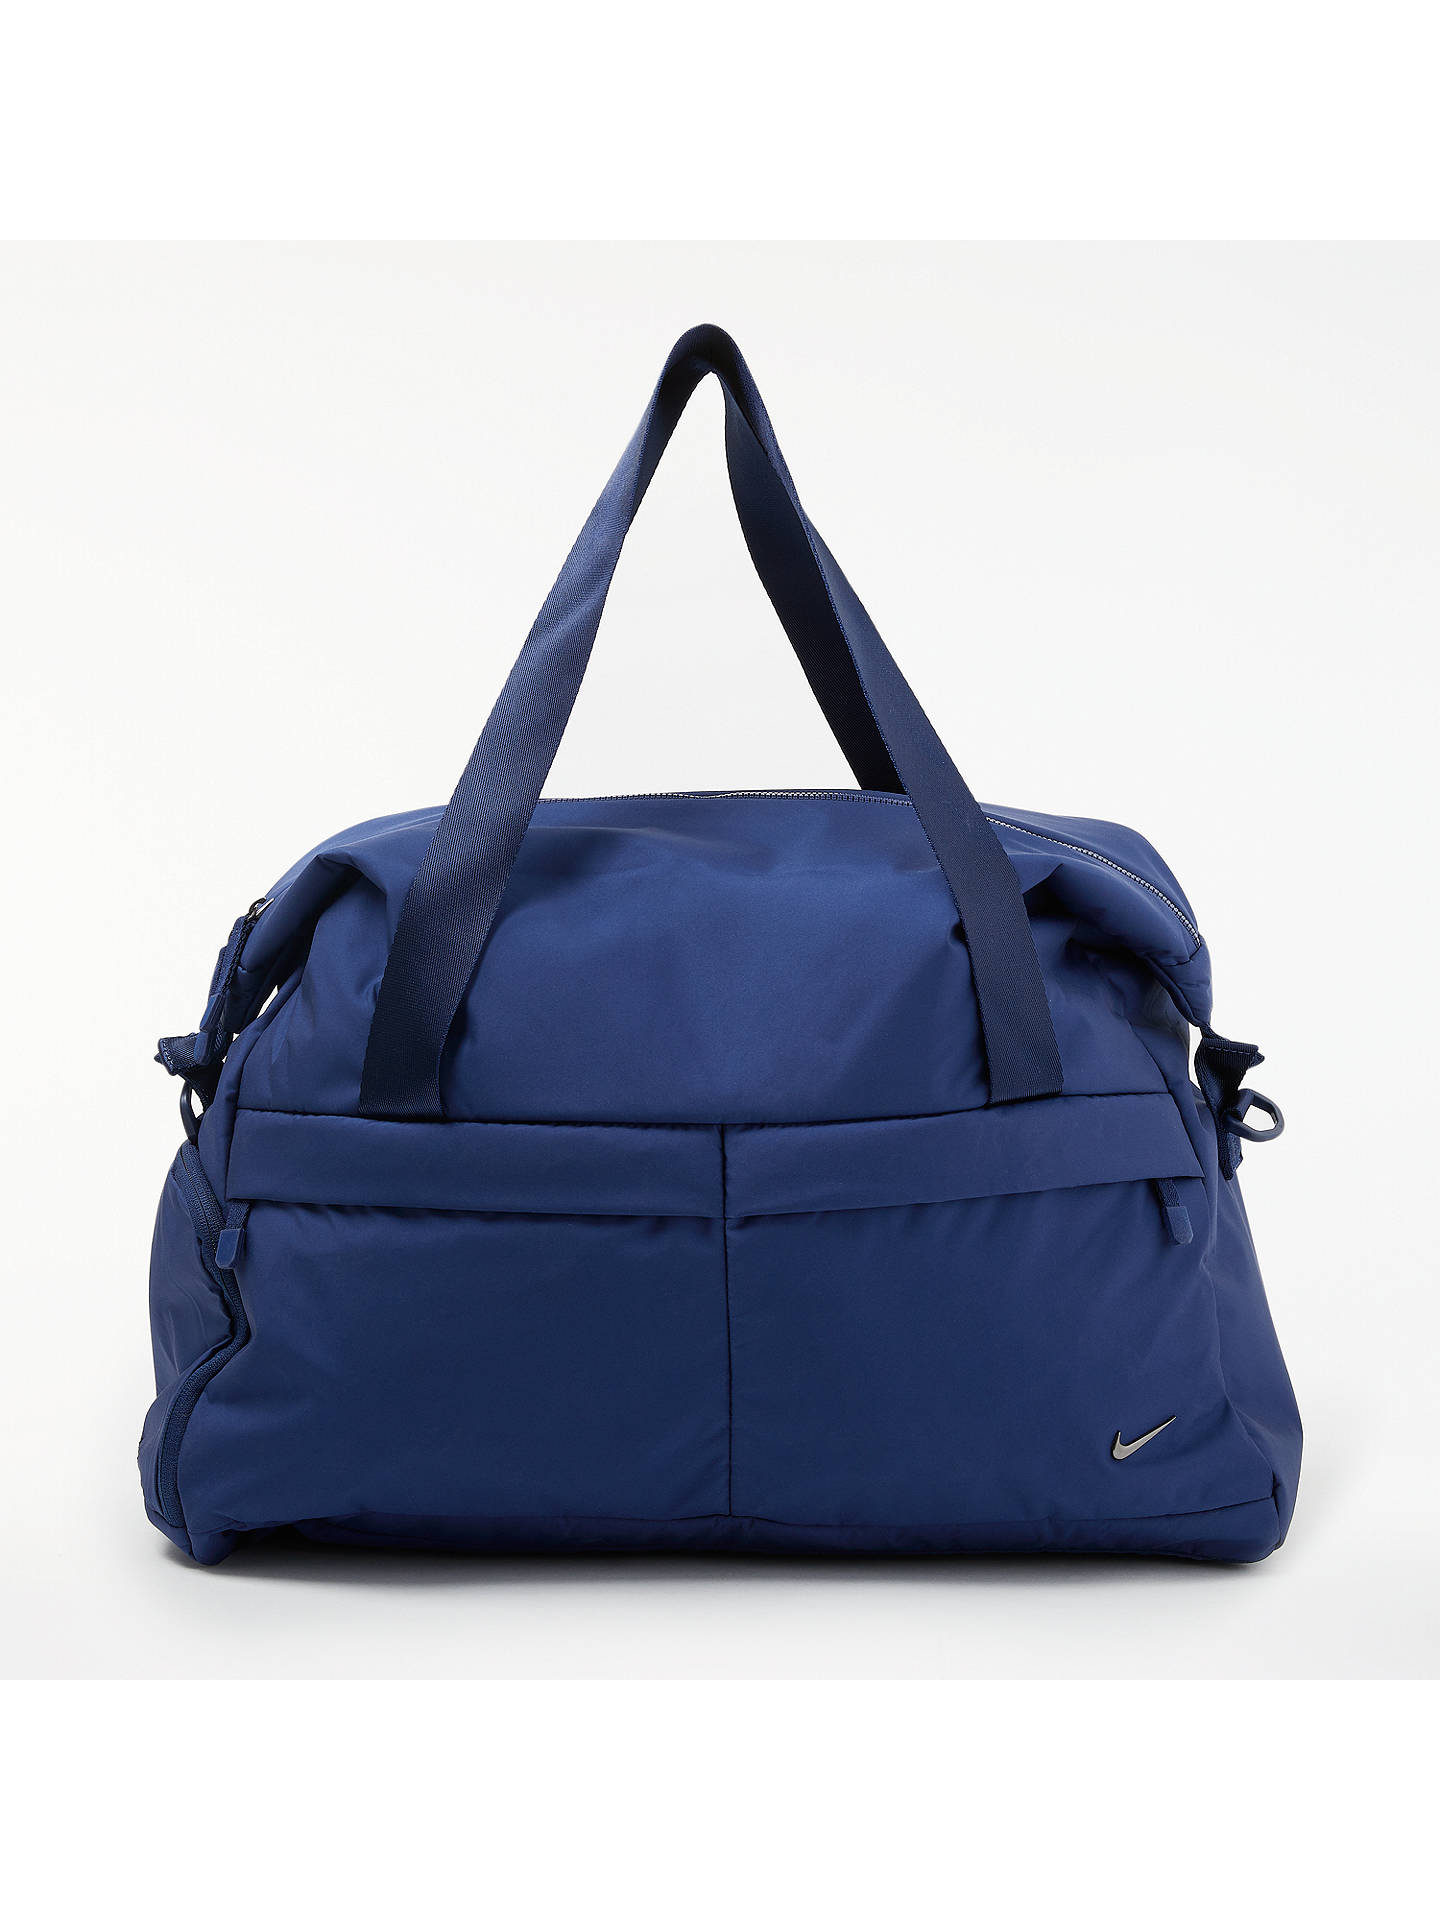 776ae9441ab19 Nike Legend Club Training Bag at John Lewis   Partners